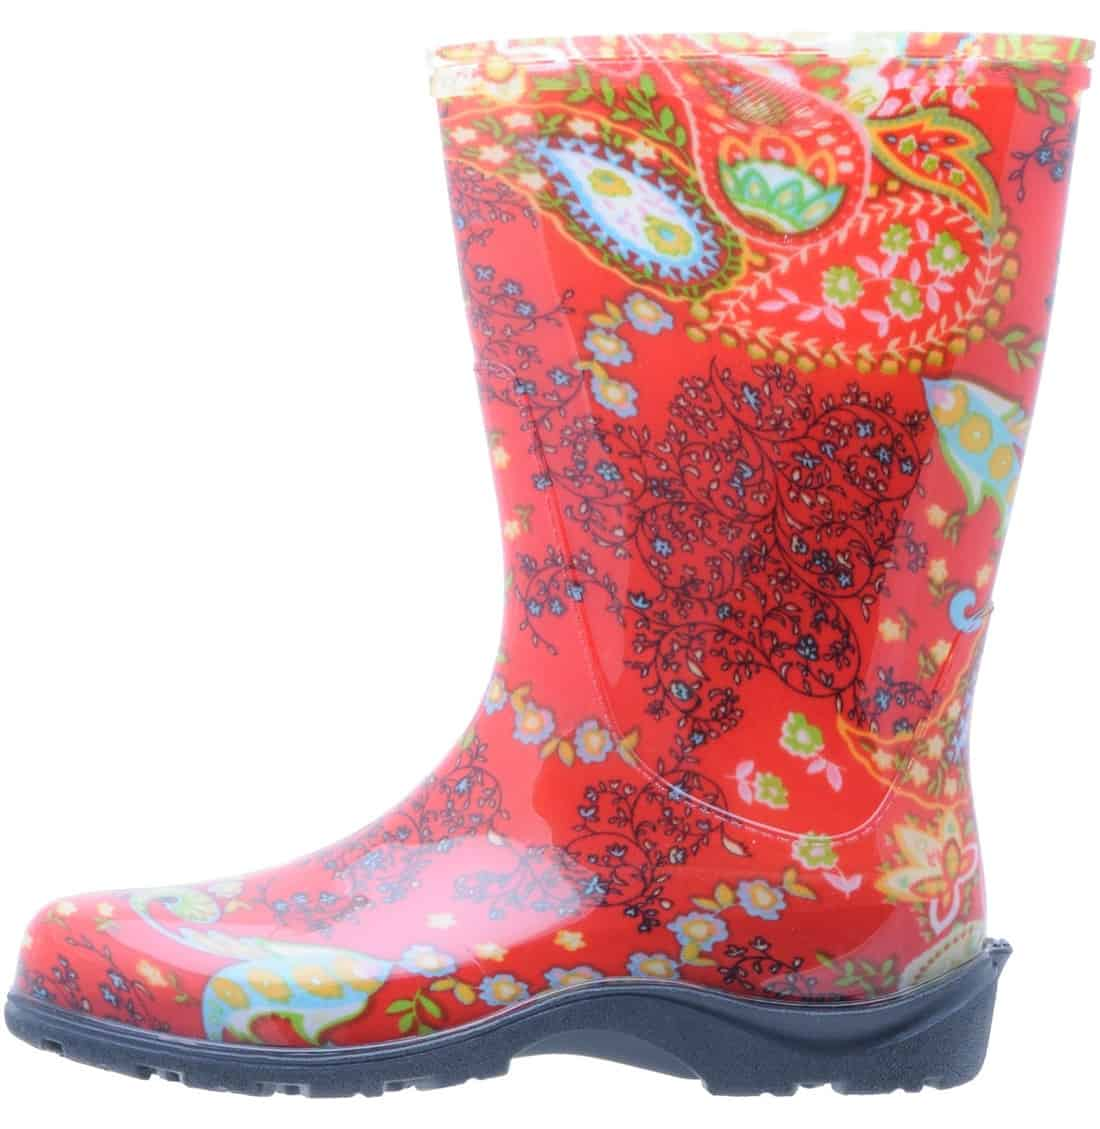 Slogger Boots in Paisley Red